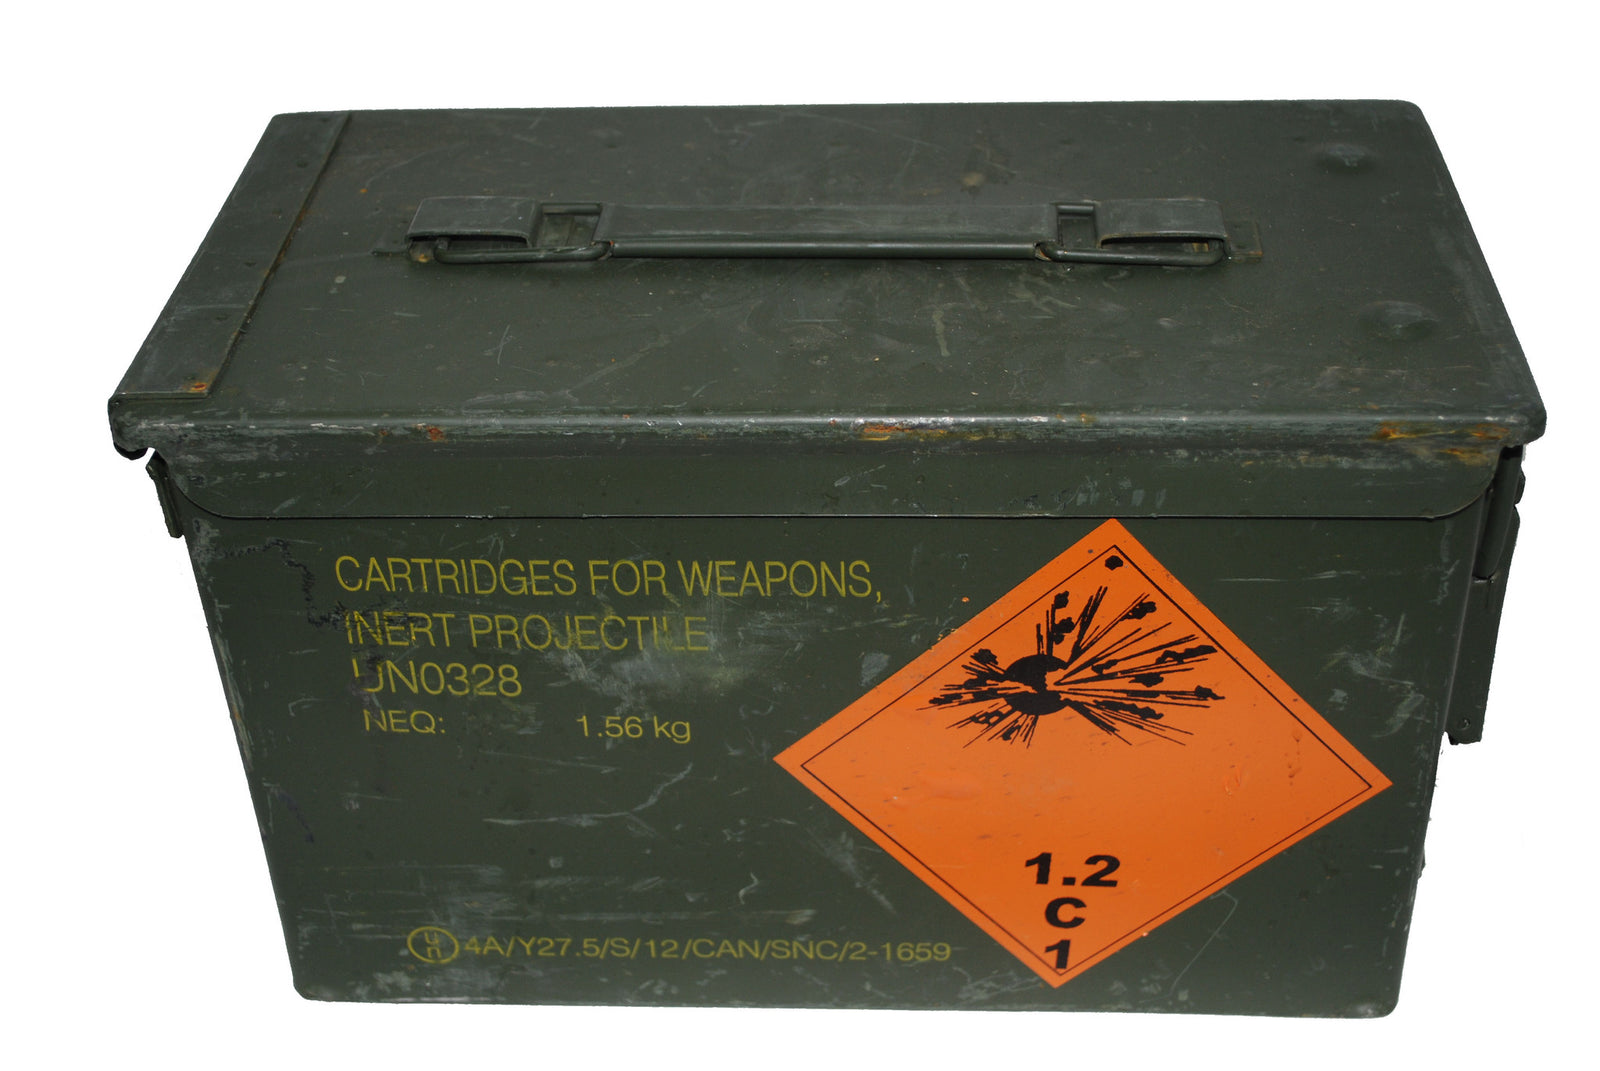 ... Ammunition ammo box 50 cal military surplus NATO storage tools ...  sc 1 st  Surplus and Lost - Shopify & Ammunition ammo box 50 cal military surplus NATO storage tools ...